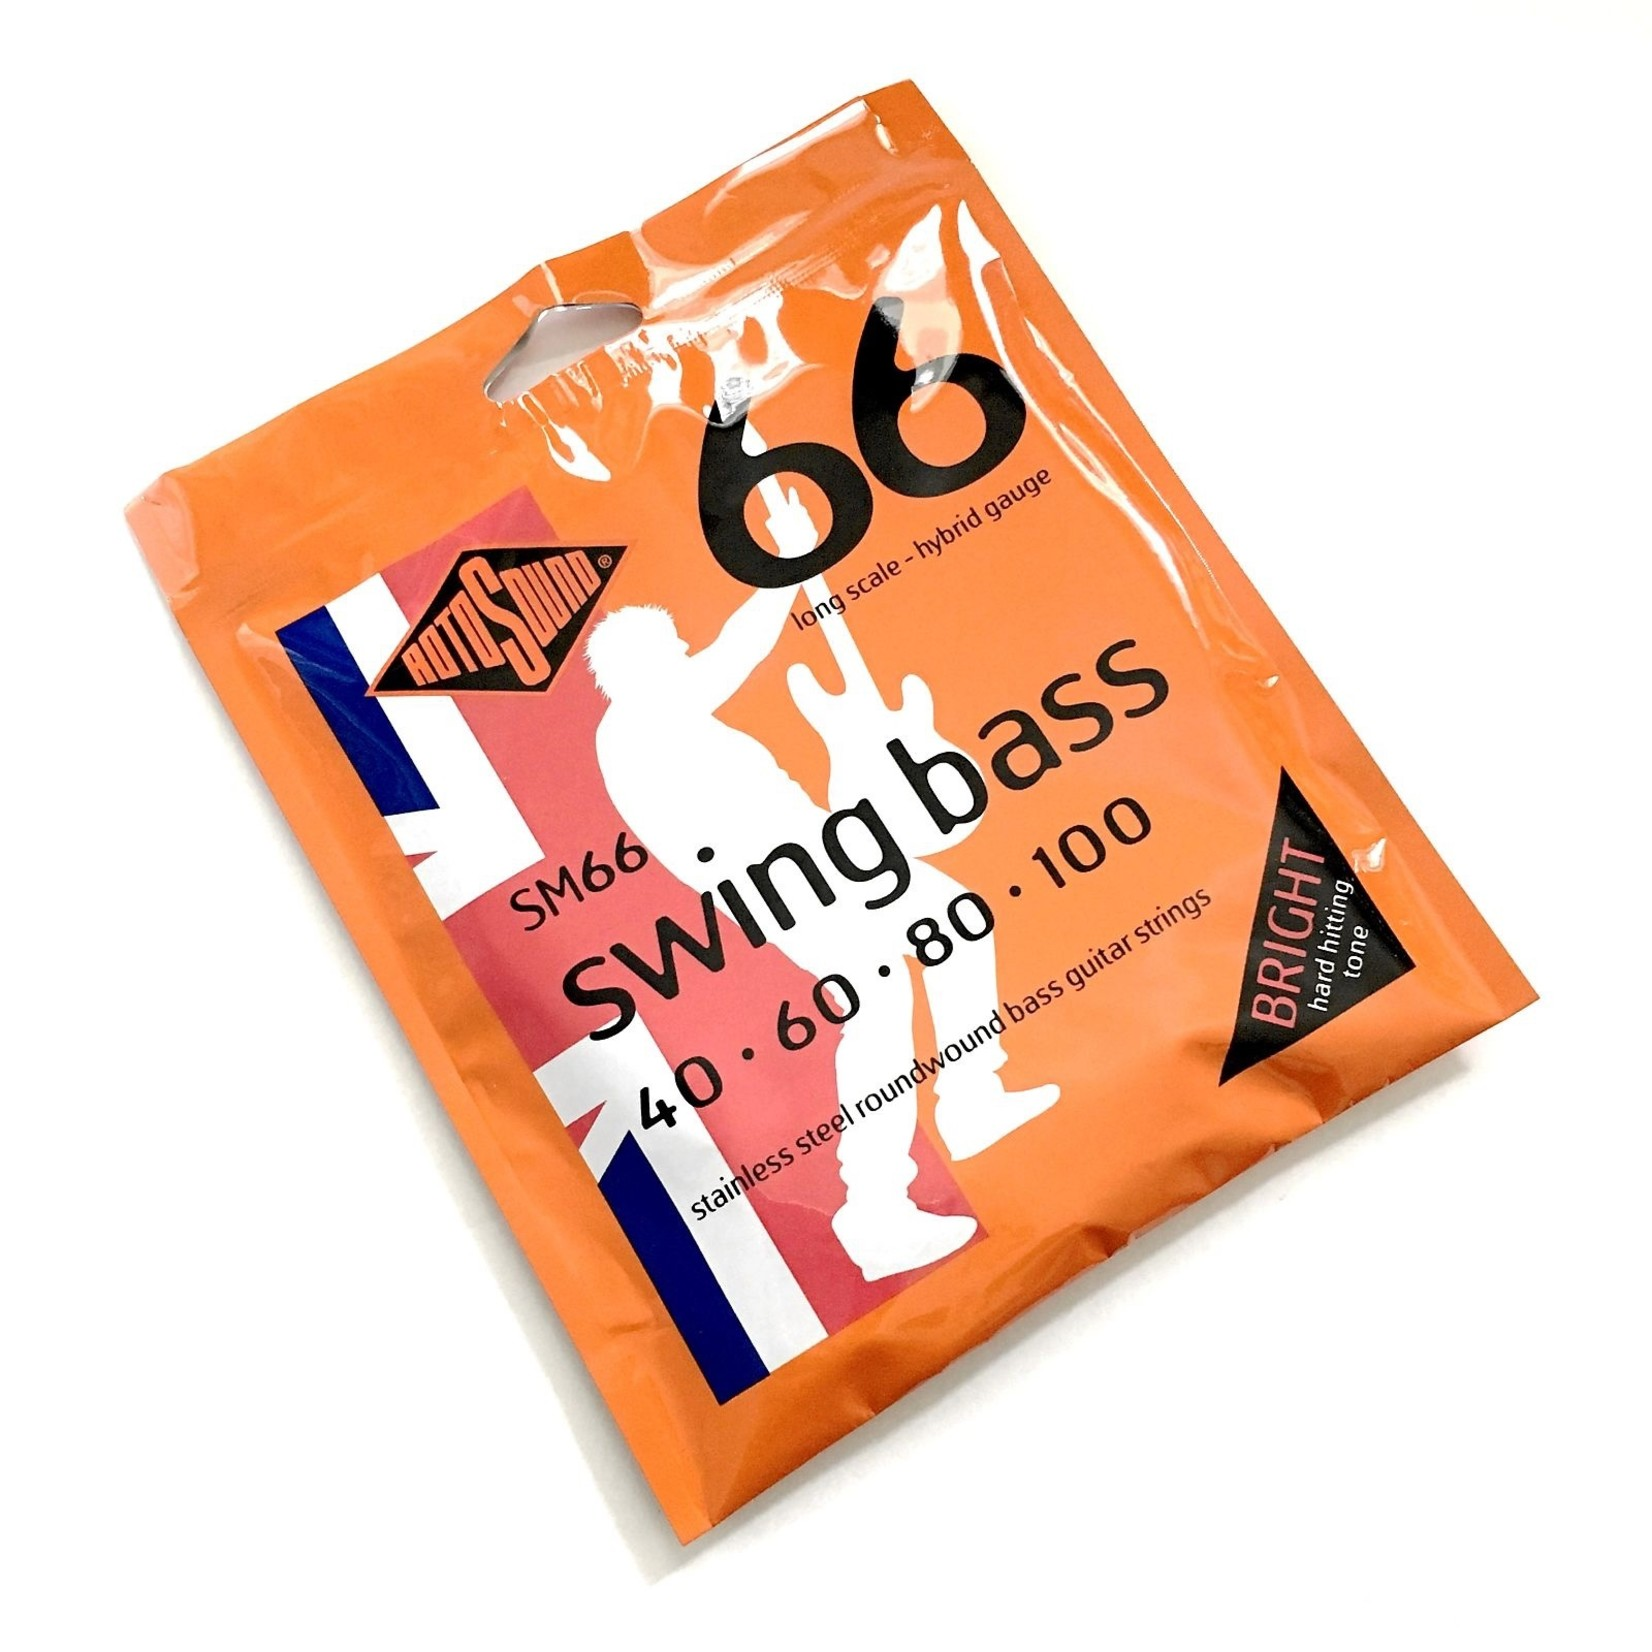 Rotosound Rotosound SM66 Long Scale - Hybrid Gauge (40-100), Stainless Steel Roundwound Bass Strings